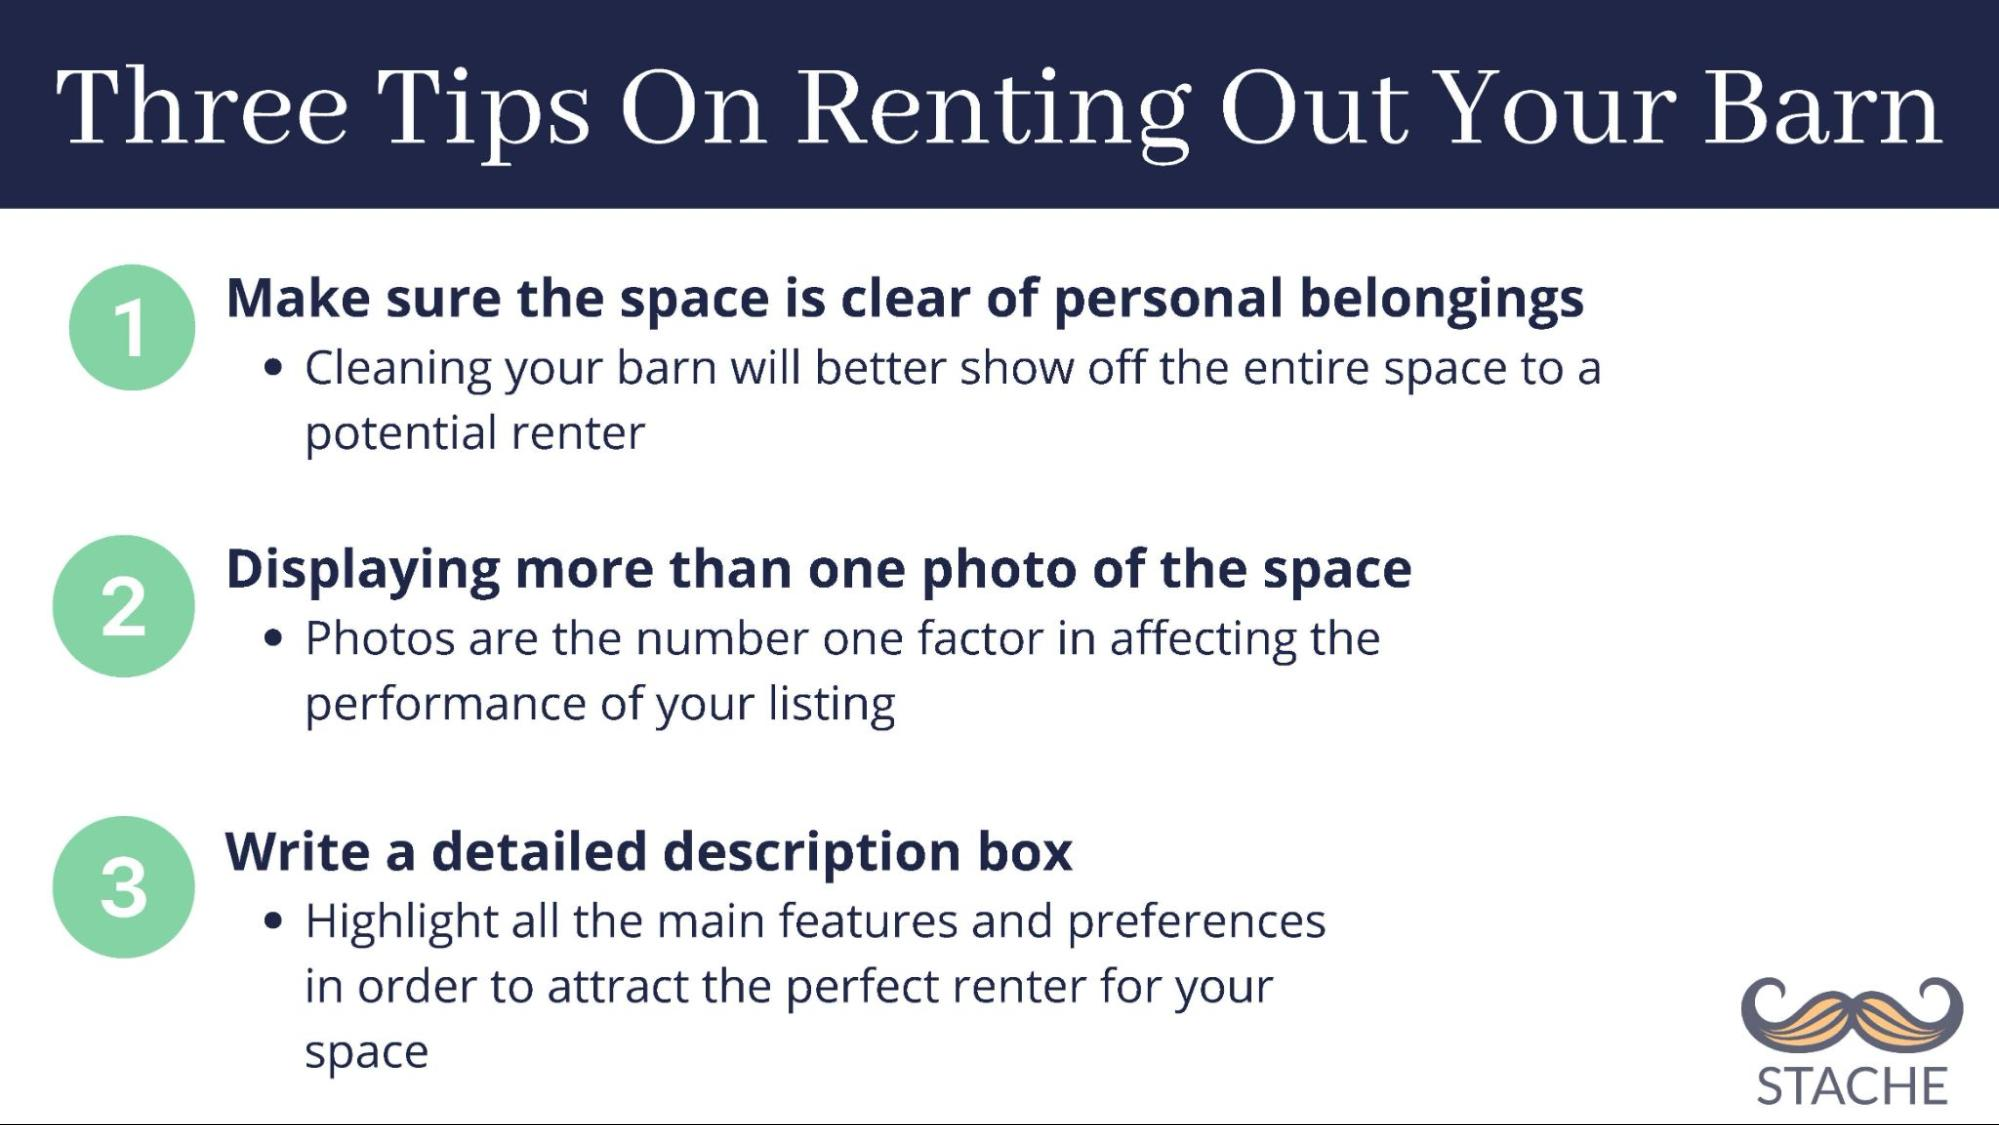 tips on renting out your barn